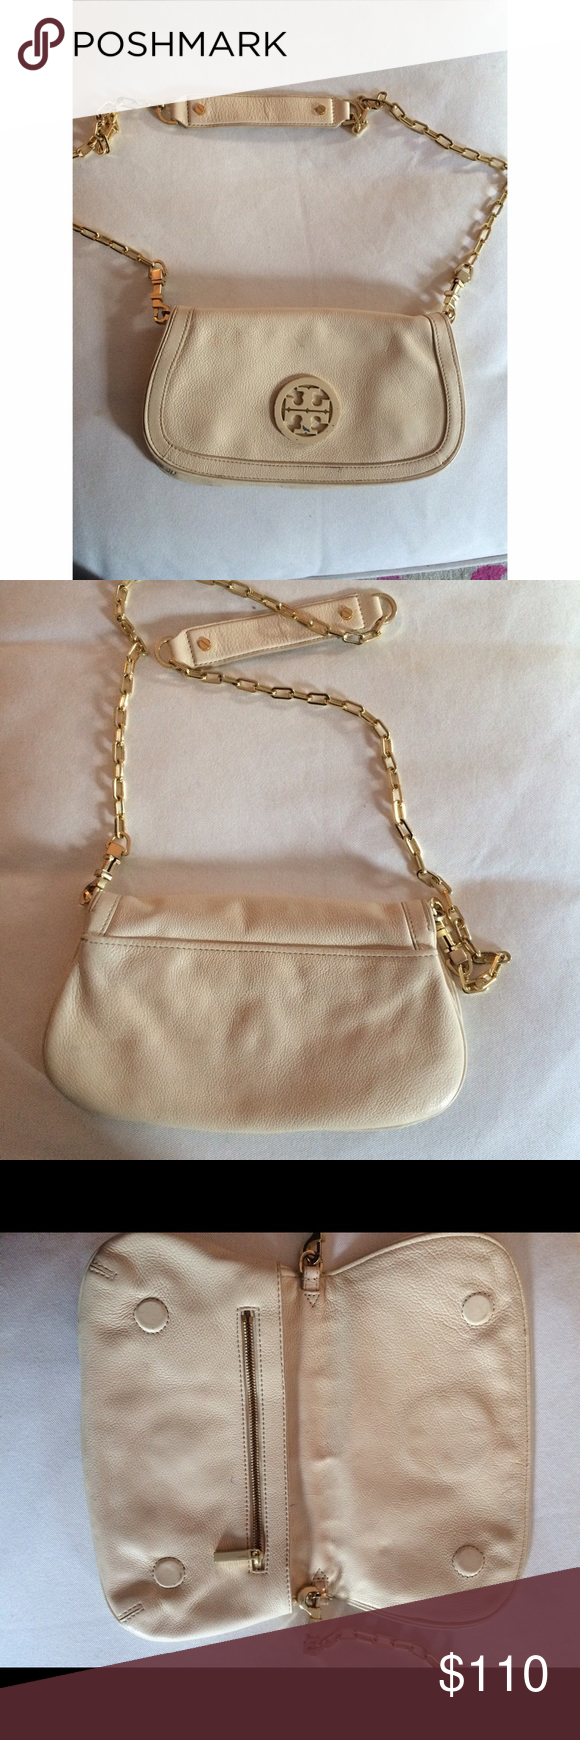 Tory Burch Beige Cross Body Bag Great going out purse! As seen in the photos, she is in good shape but has some minor wear inside the bag (lipstick stain) and the outside Tory Burch logo is scratched as well as the side of the gold clasp. Originally 275! Open to reasonable offers :) Tory Burch Bags Crossbody Bags